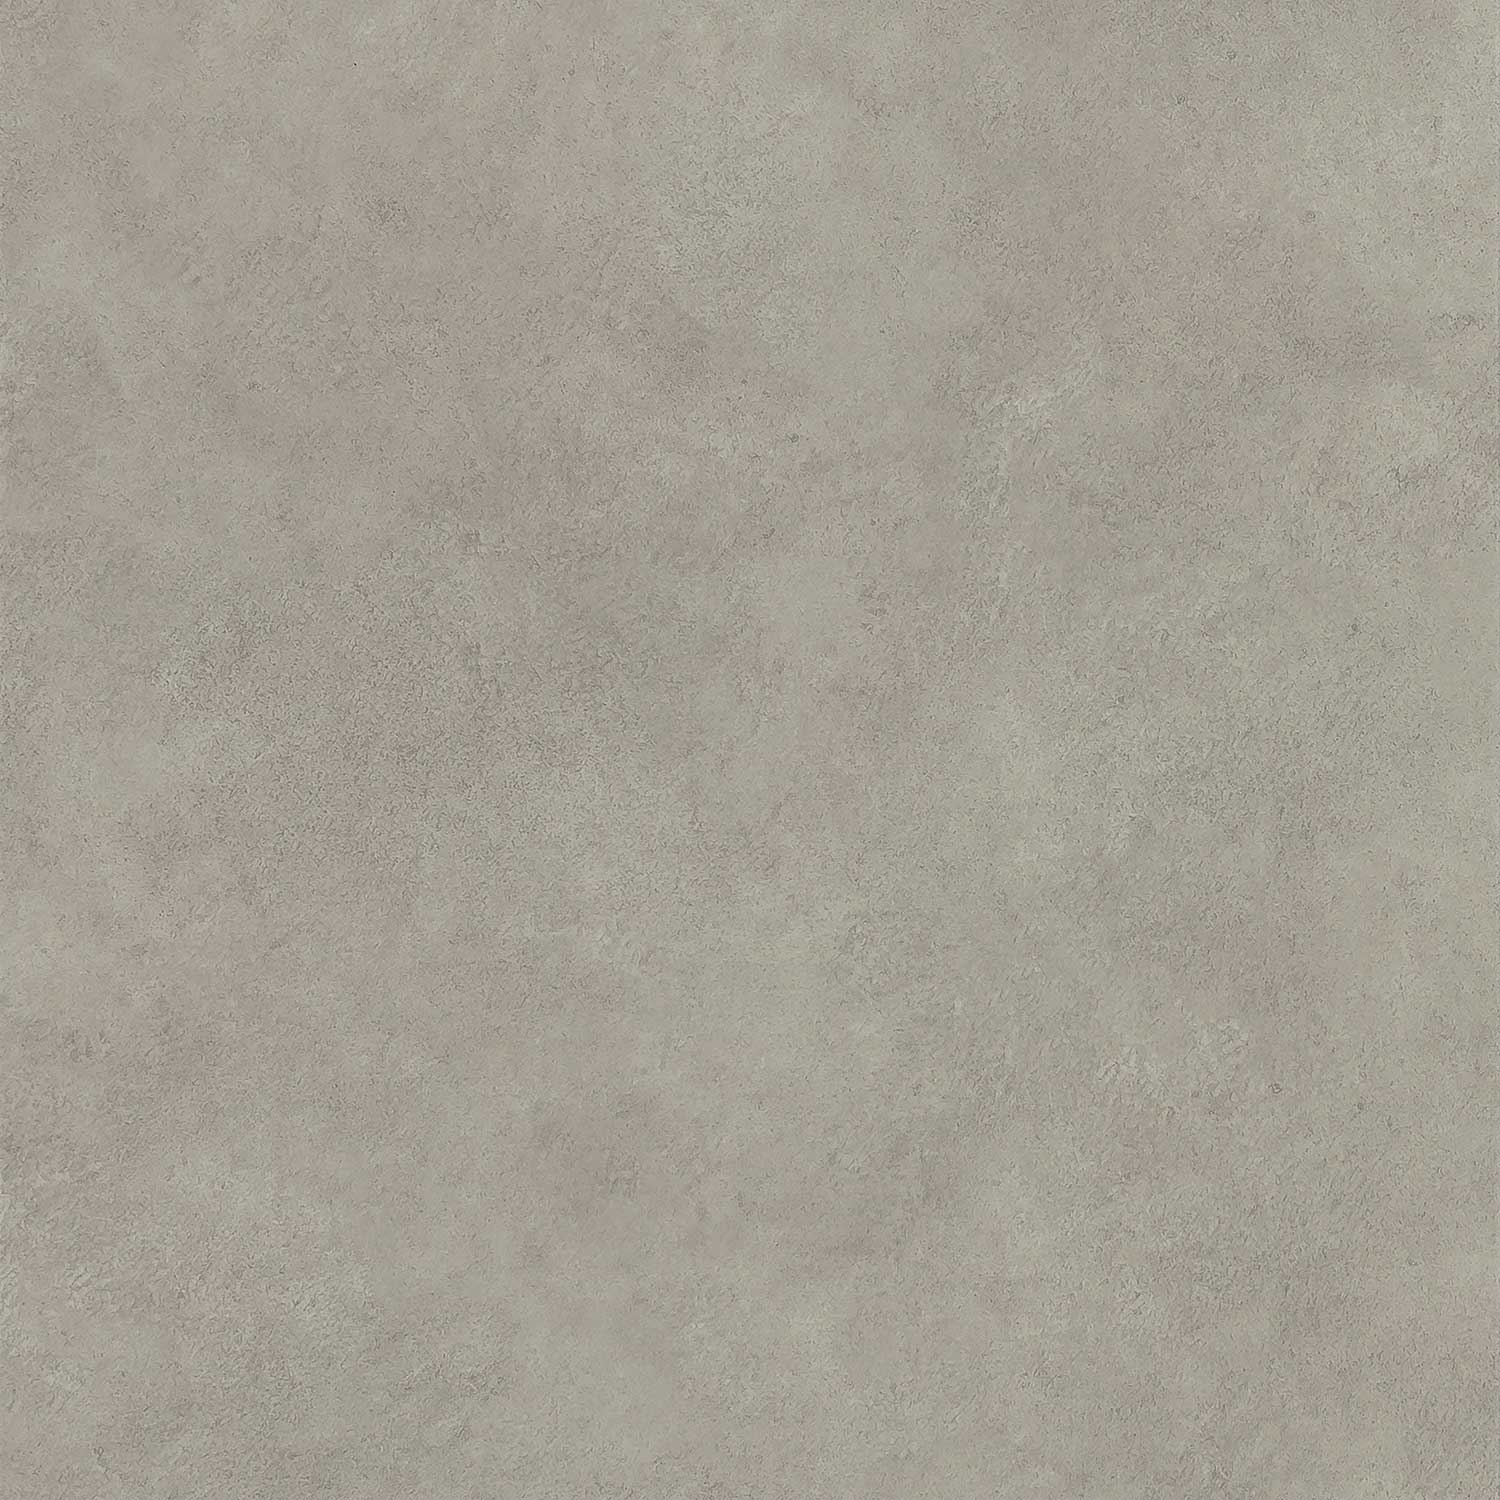 Misted Concrete 2882